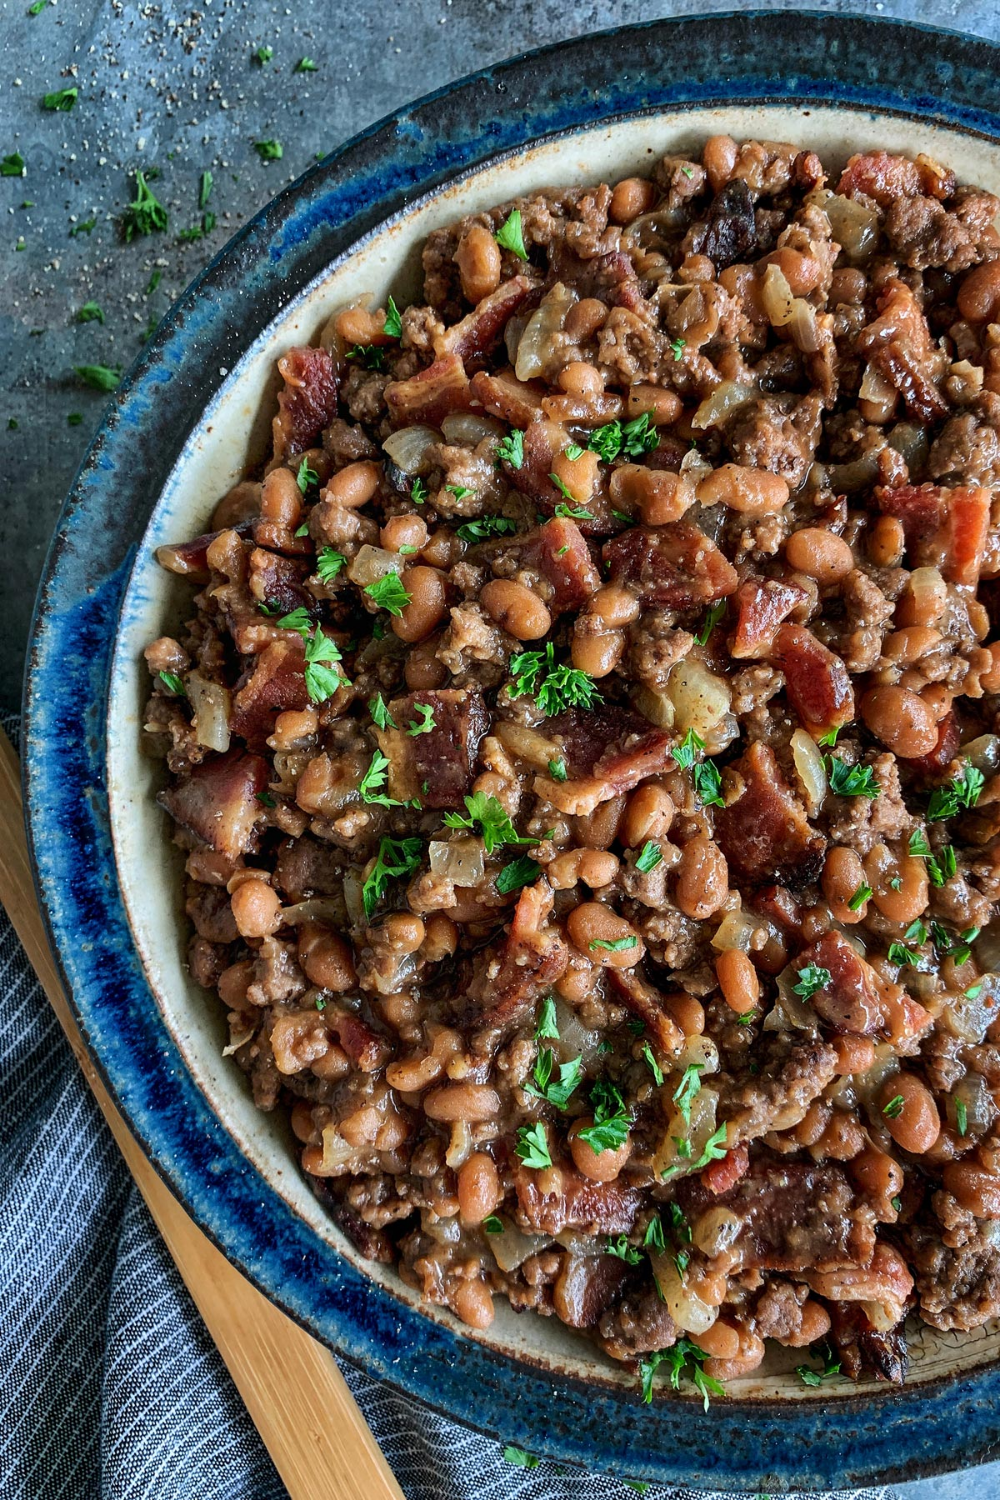 Cowboy Beans From Afarmgirlsdabbles Com This Easy Baked Beans Recipe Is Hearty And Flavorful With Bacon And Grou Cowboy Beans Bean Recipes Baked Bean Recipes